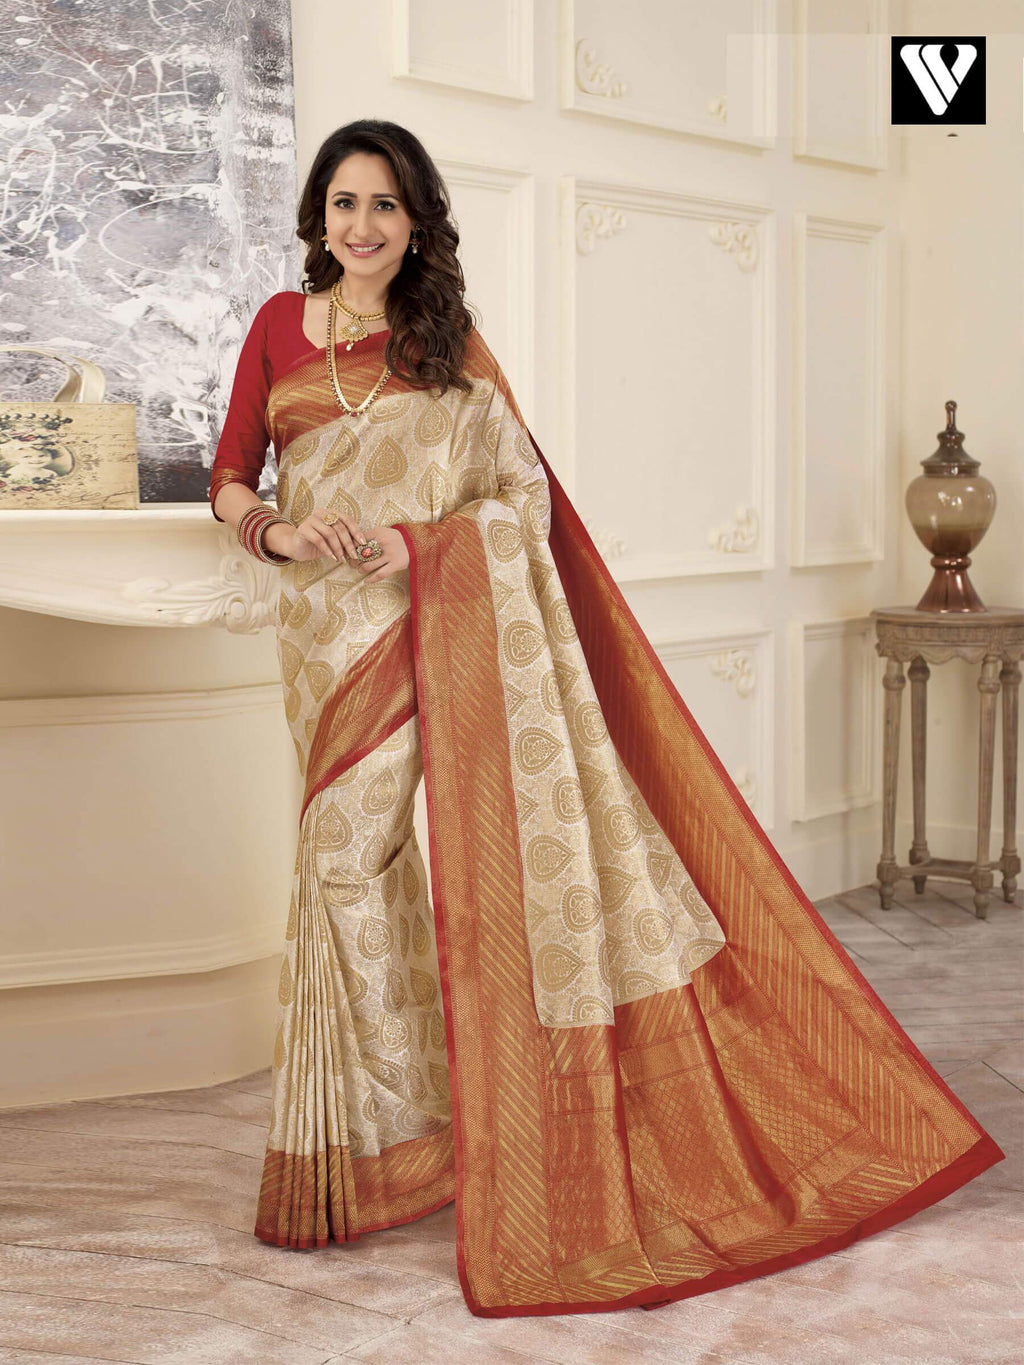 Designer Wedding Wear Banarasi Art Silk Sarees In Cream Gold